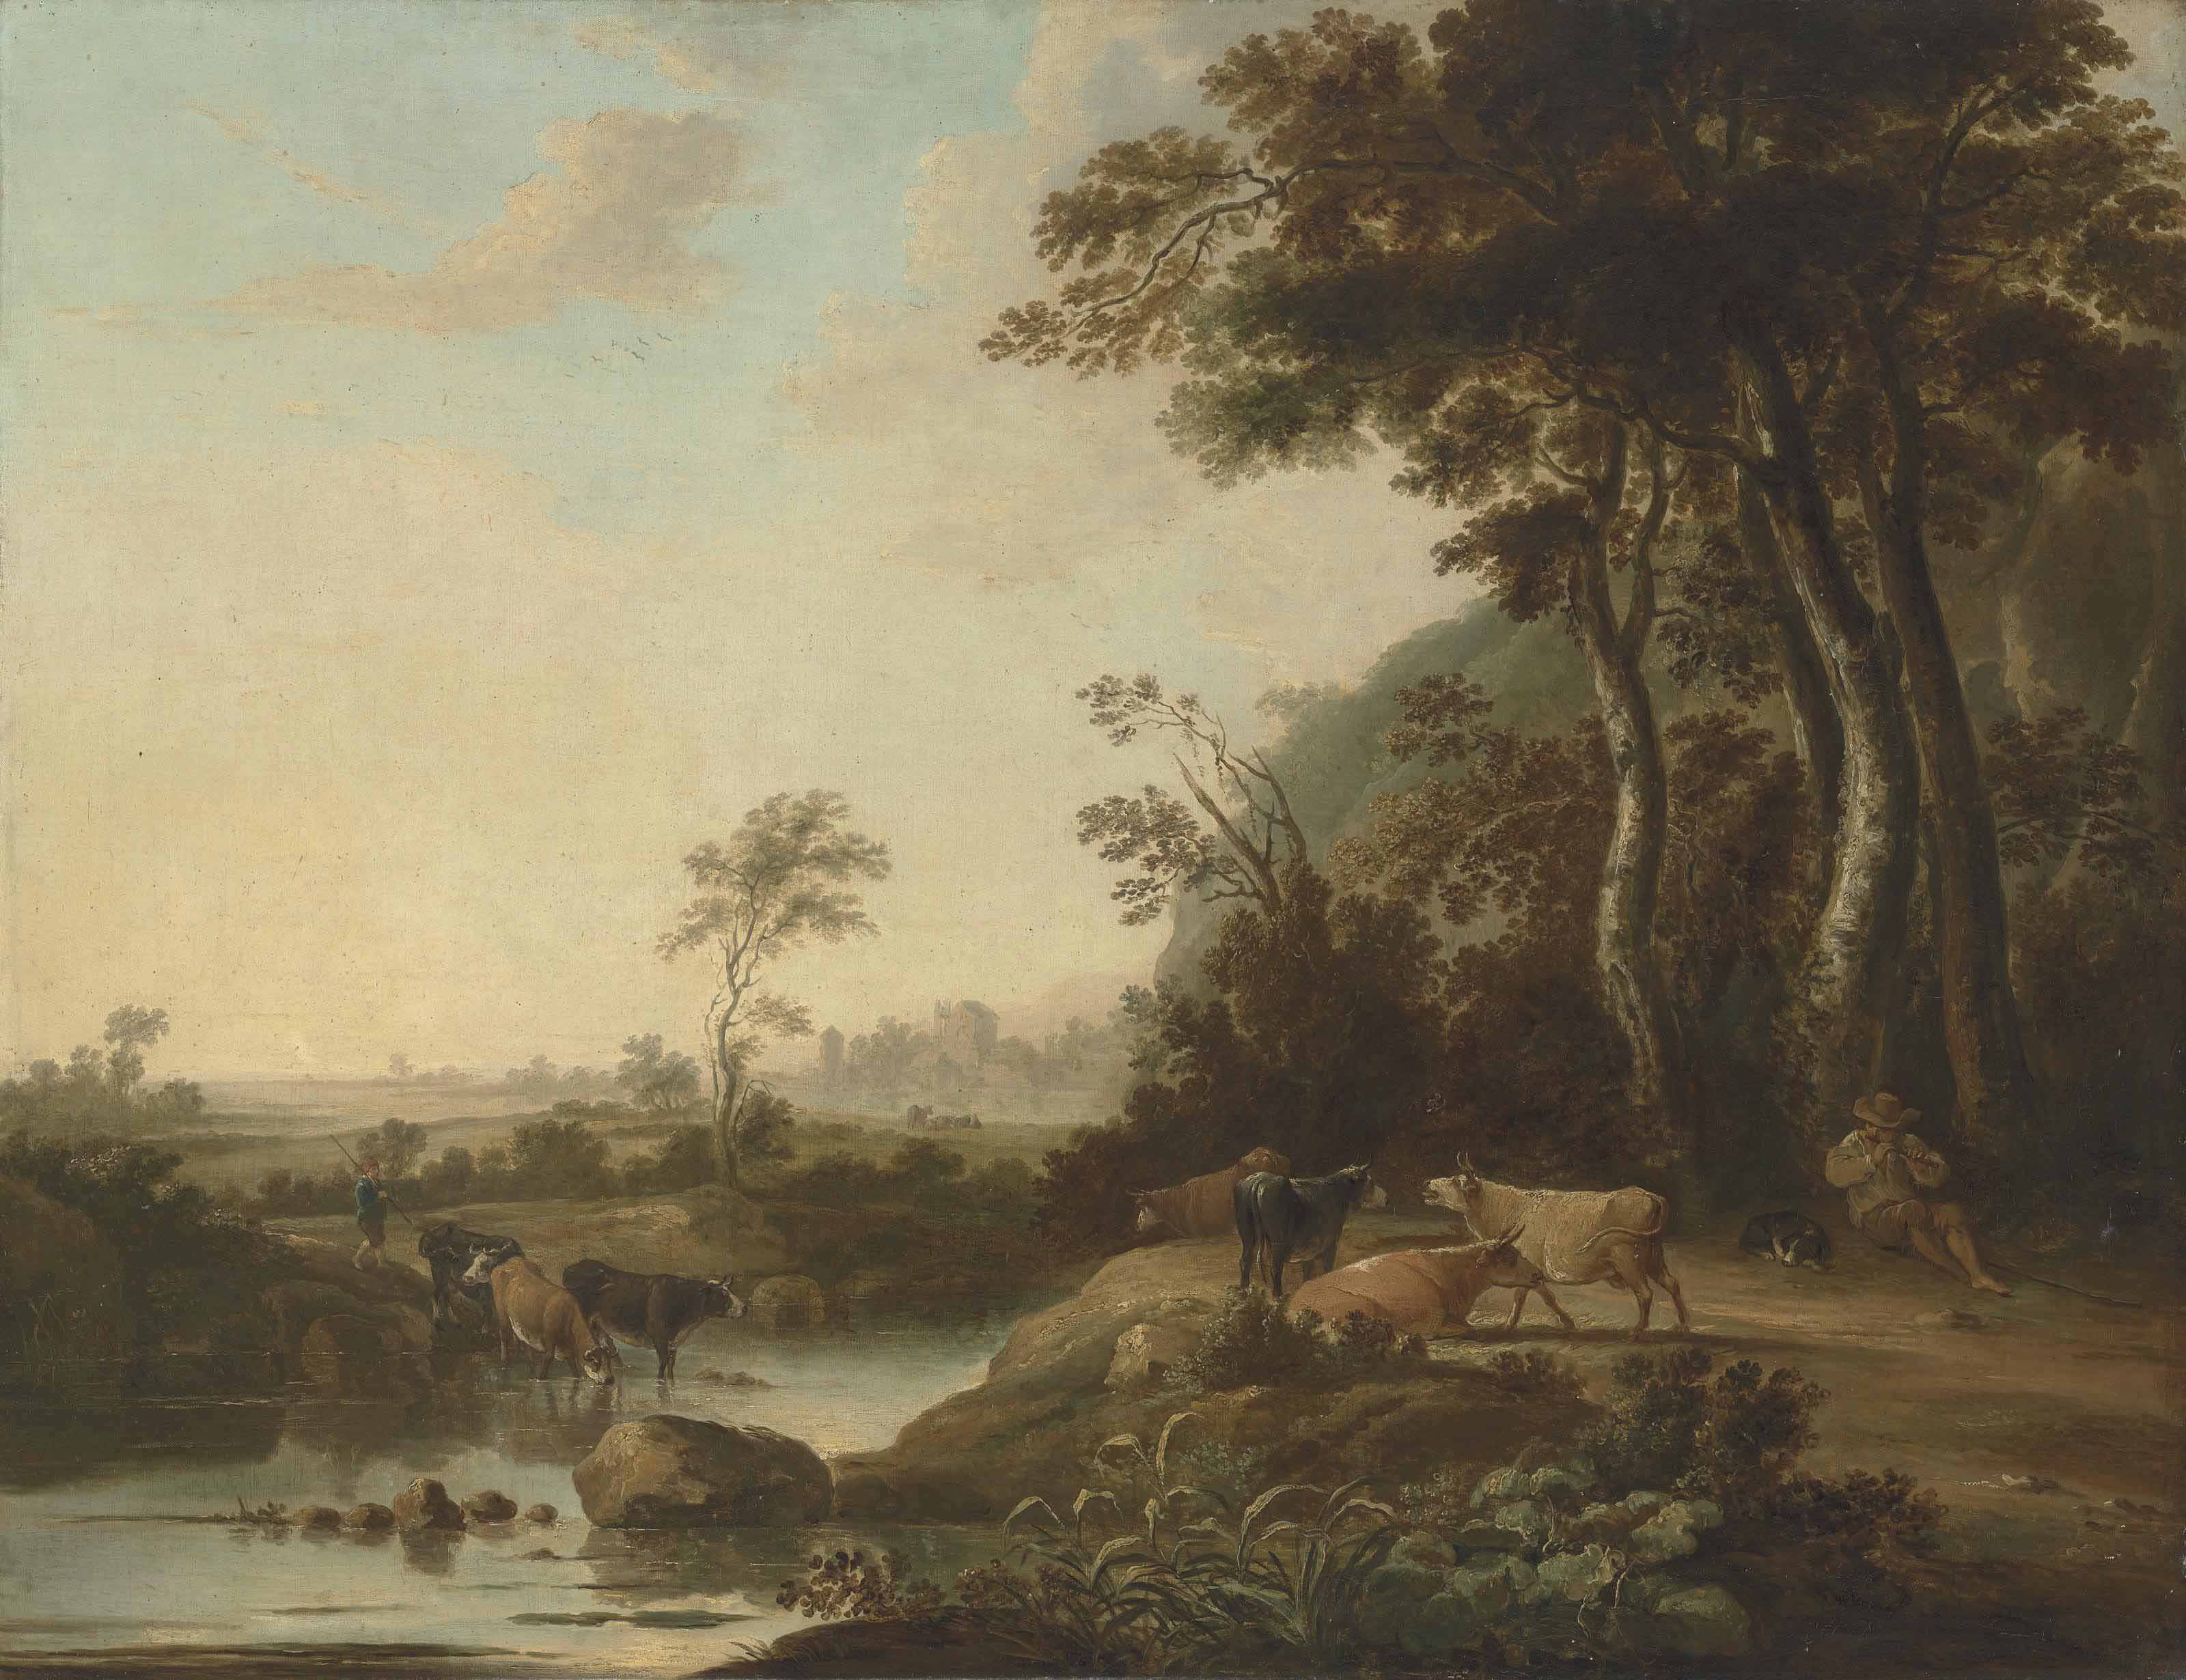 A wooded landscape with a herdsman and his cattle by a stream, a village beyond